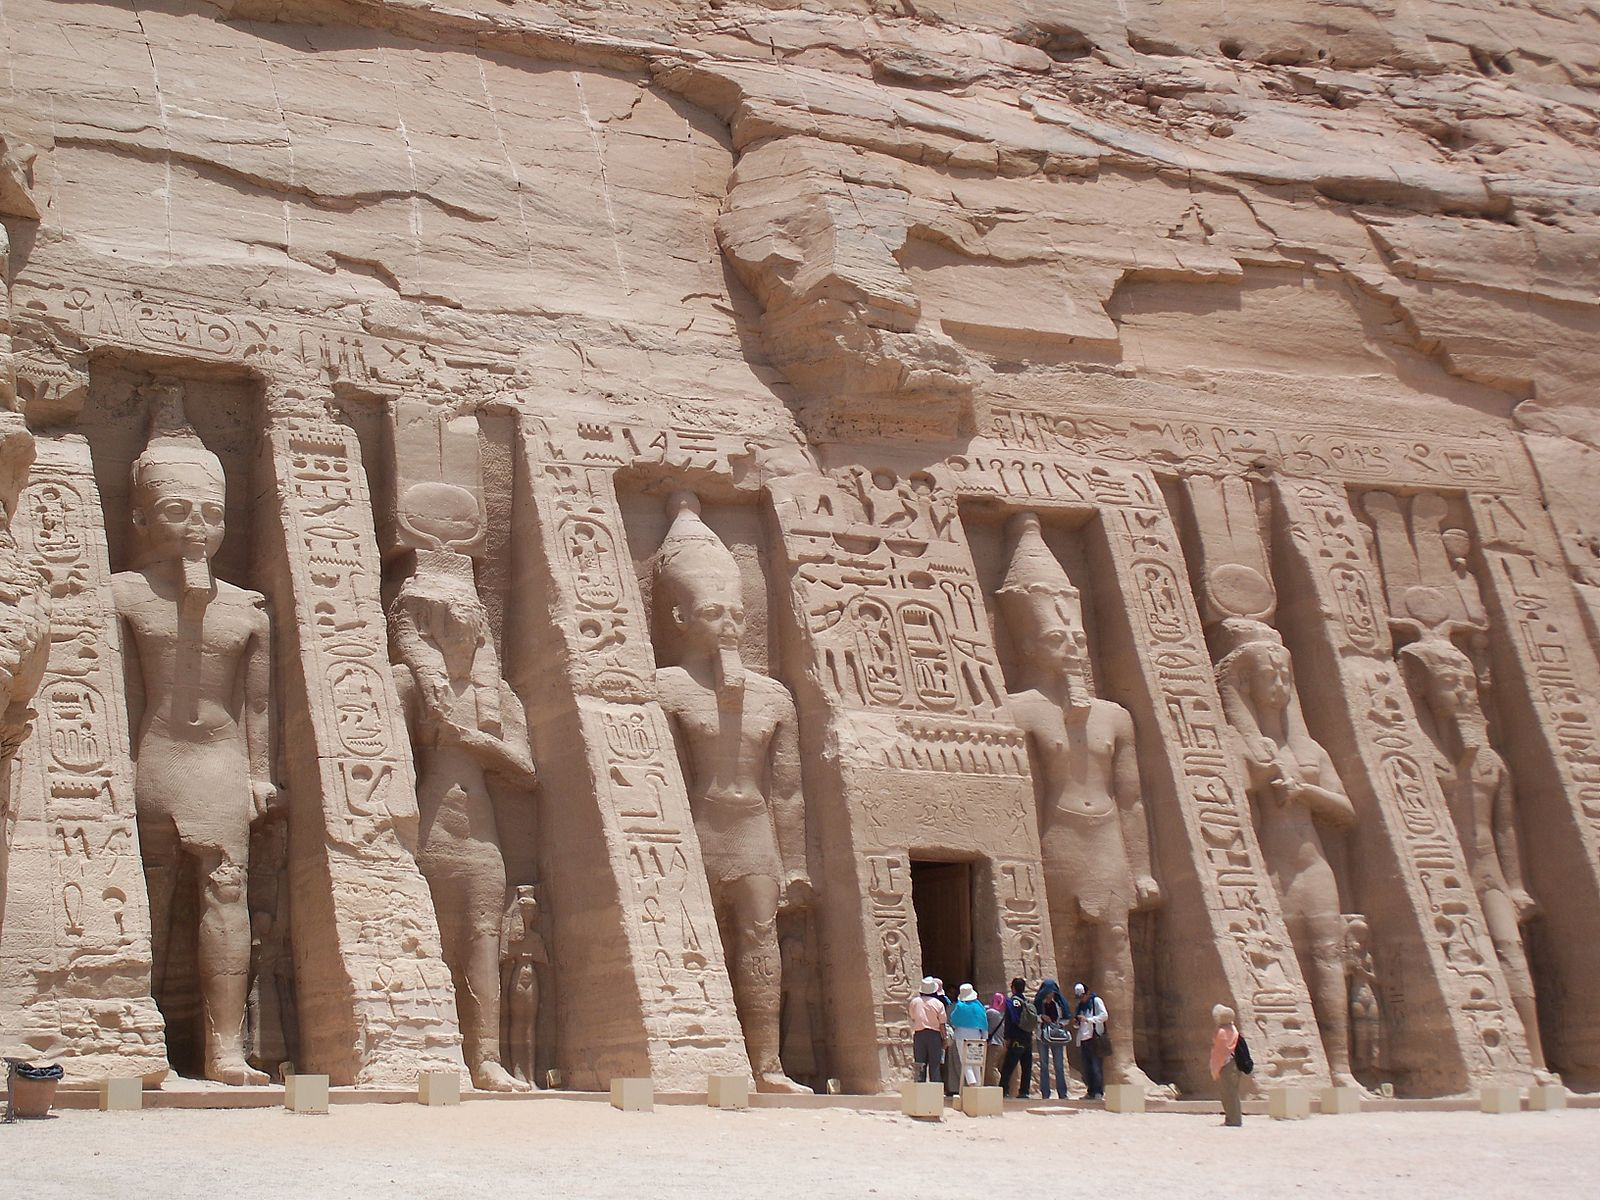 French President Begins Trip To Egypt At Abu Simbel Egypt Independent